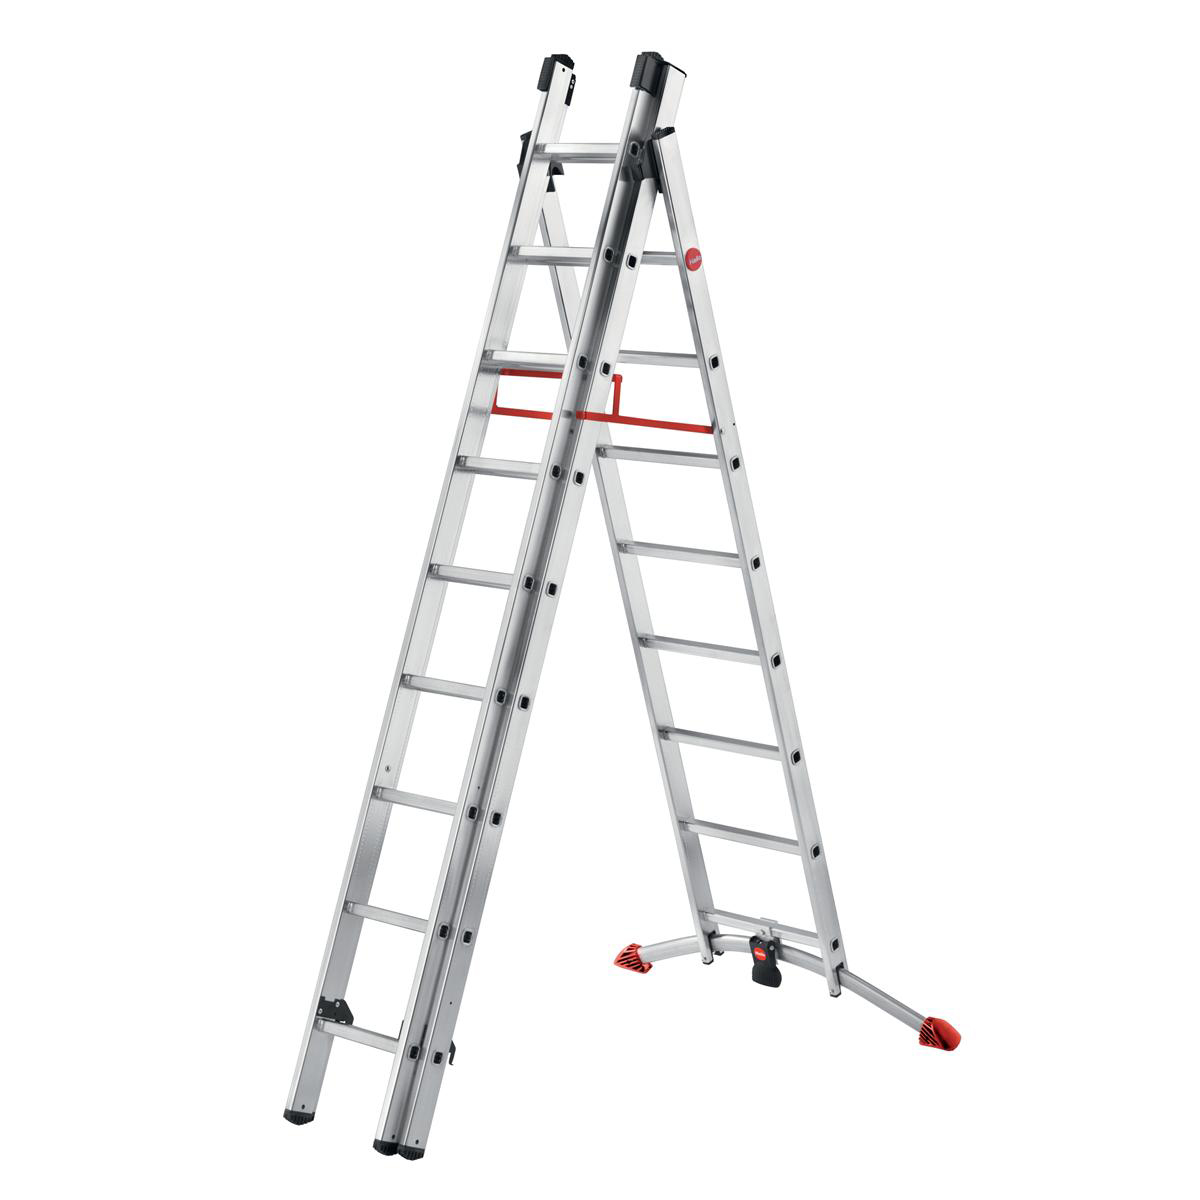 Image for Combi Ladder 3 Section Capacity 150kg Rungs 2x9 and 1x8 for H6.7m 21.7kg Aluminium